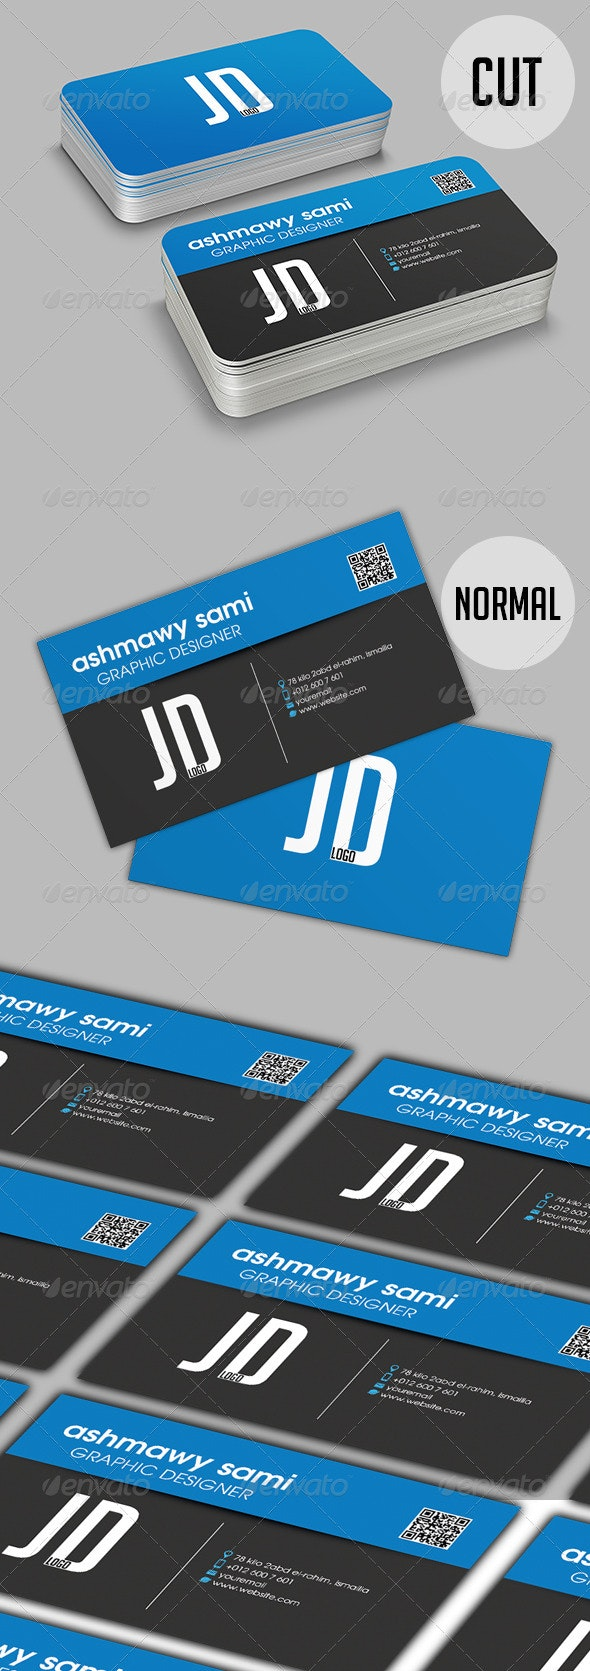 2 Creative Business Card 11 - Creative Business Cards